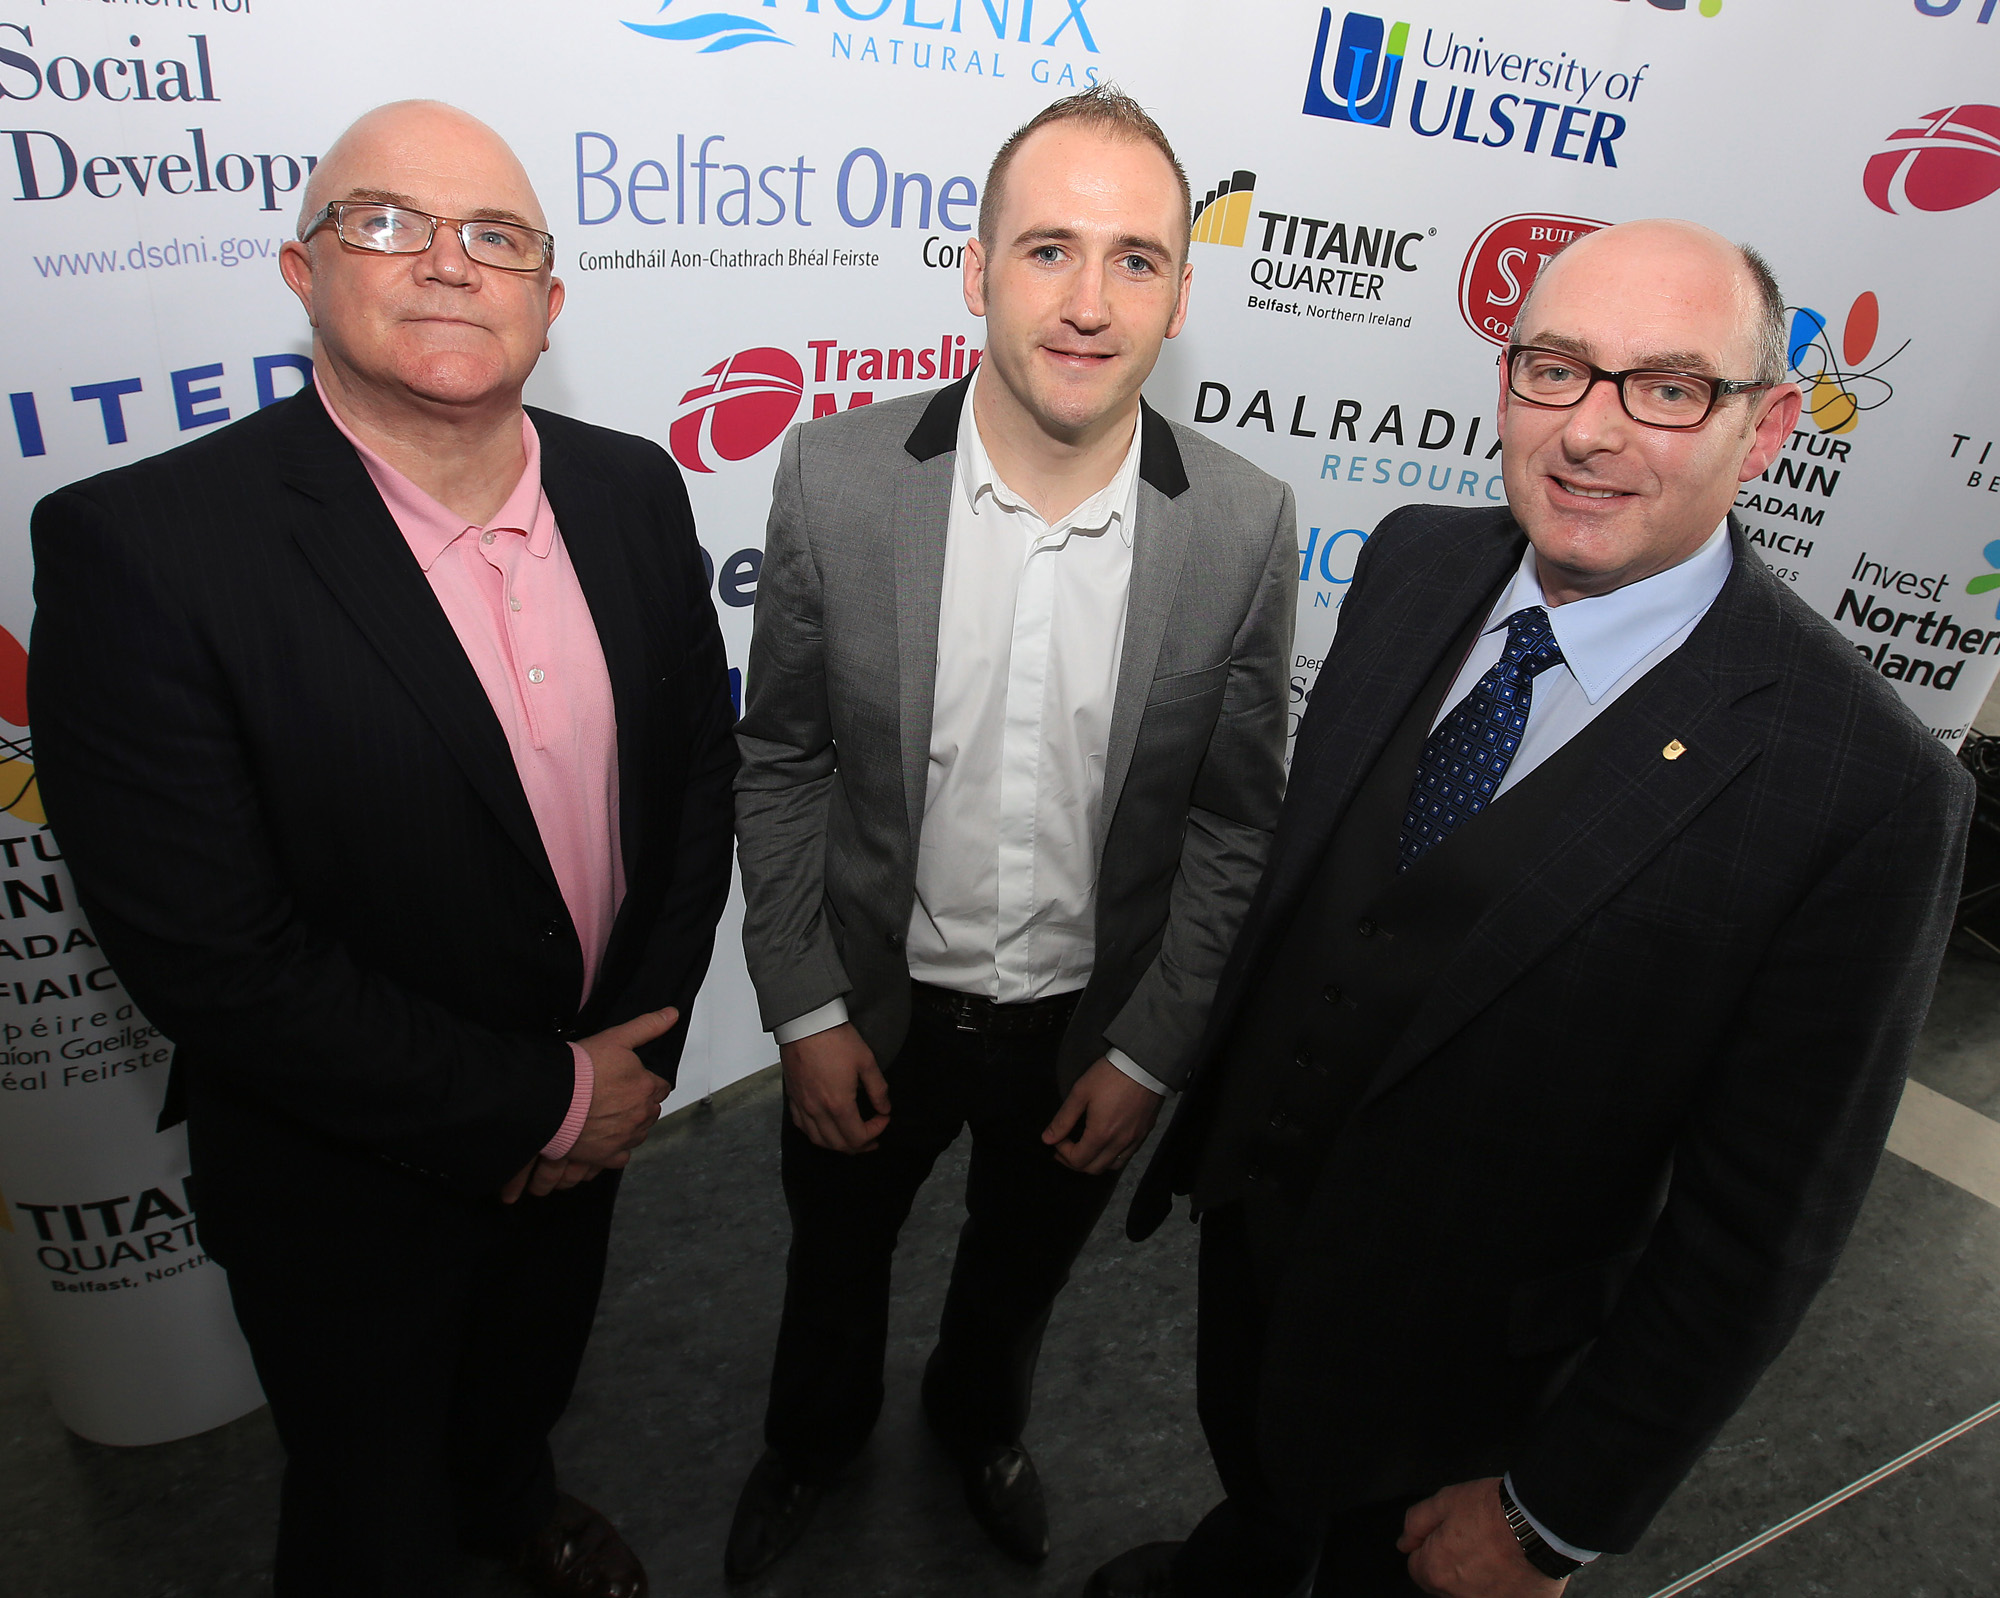 Belfast MET E3, One City Conference 'Lifting the City' . pictured: Stuart Bailie (Oh Yeah Music Centre, BBC), Kevin Gamble (Feile) and John D'Arcy (Open University) 95JC13